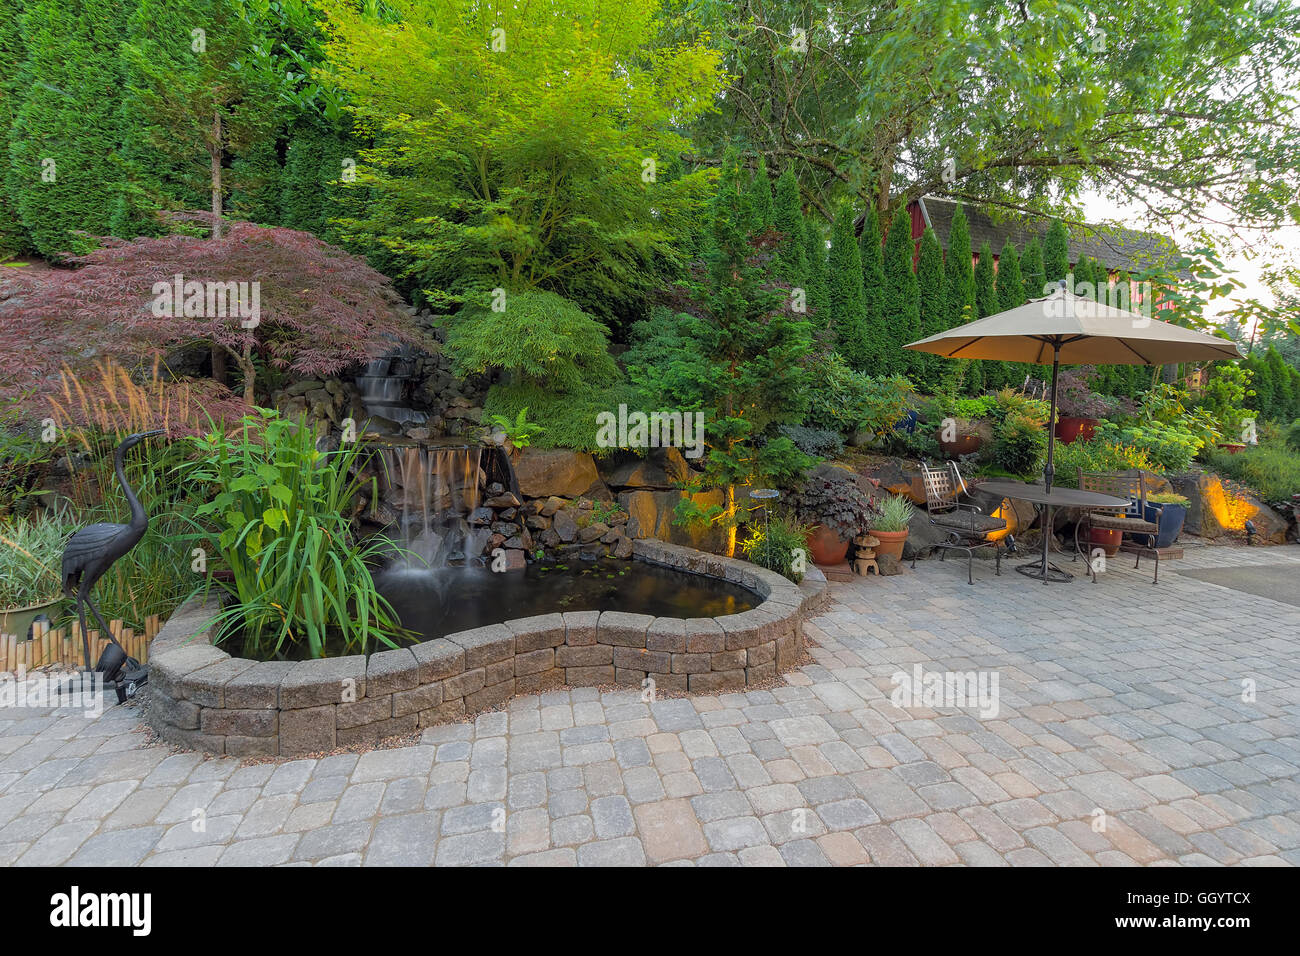 Backyard Garden Landscaping With Waterfall Pond Trees Plants Trellis Stock Photo Alamy